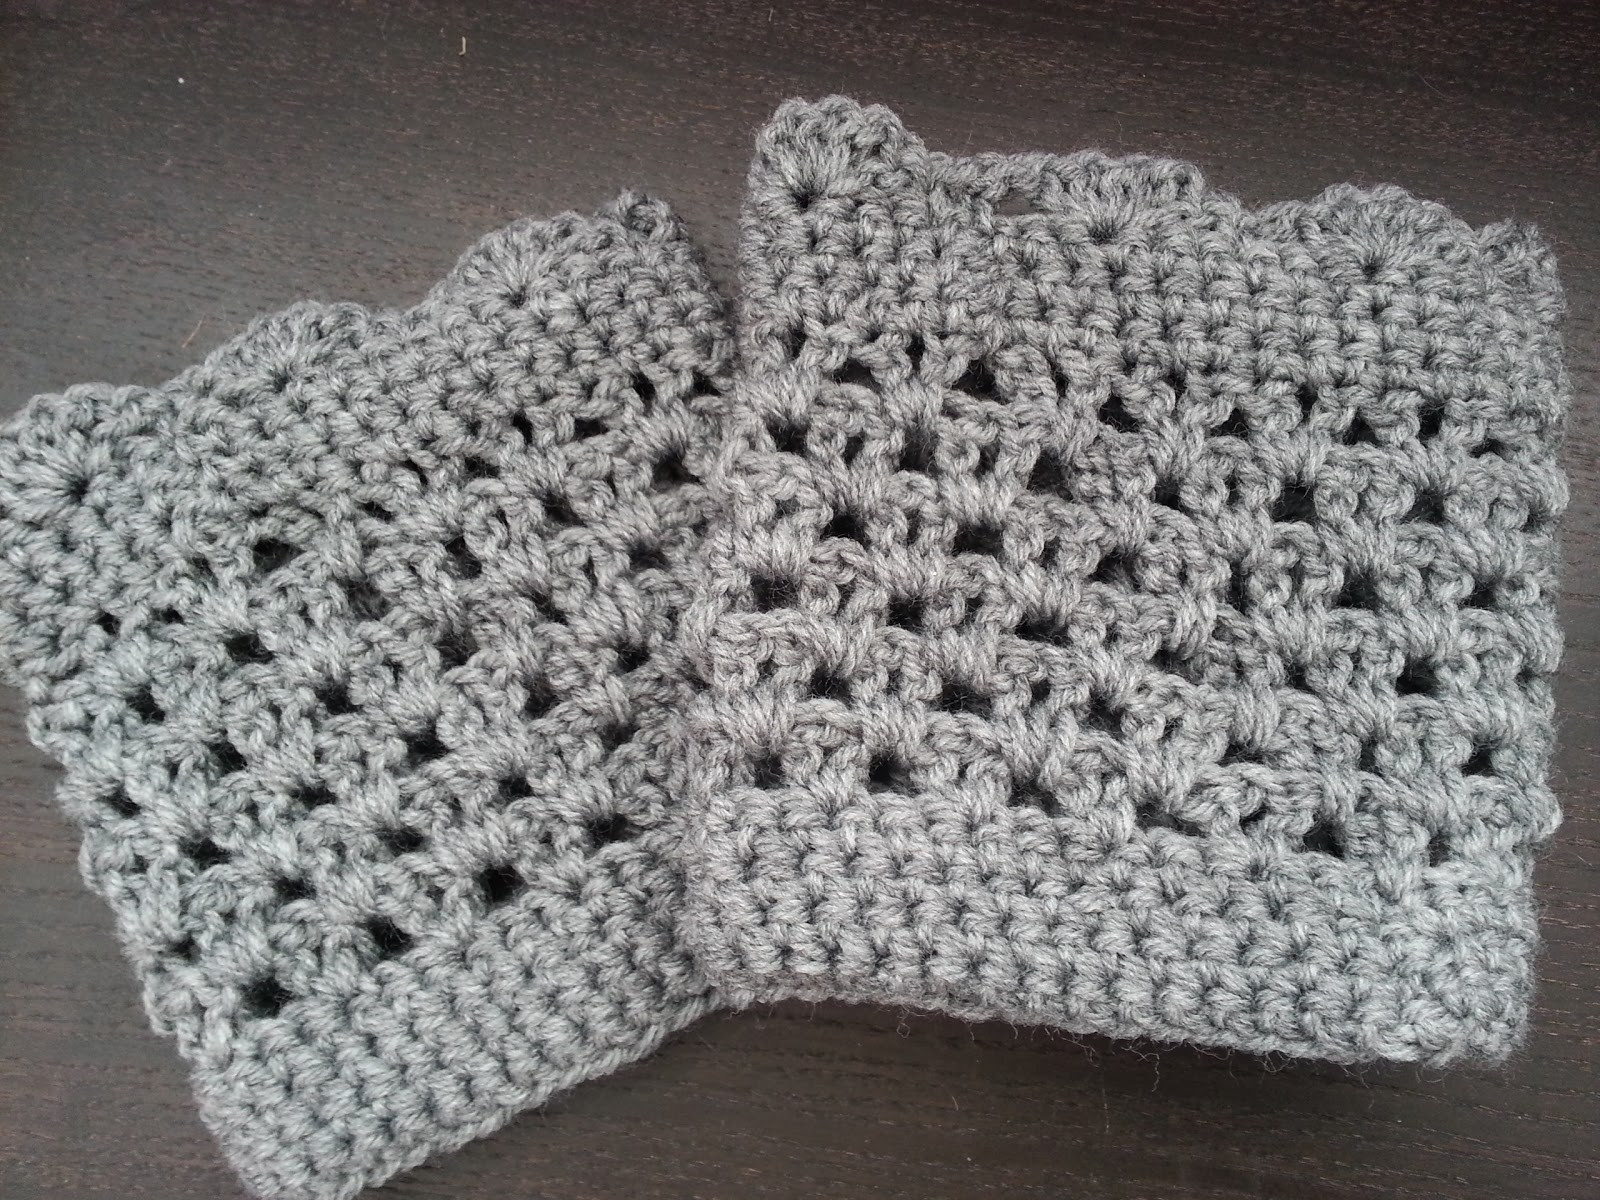 Easy Crochet Best Of 39 All Free Crochet Boot Cuffs Patterns Patterns Hub Of Adorable 44 Pics Easy Crochet